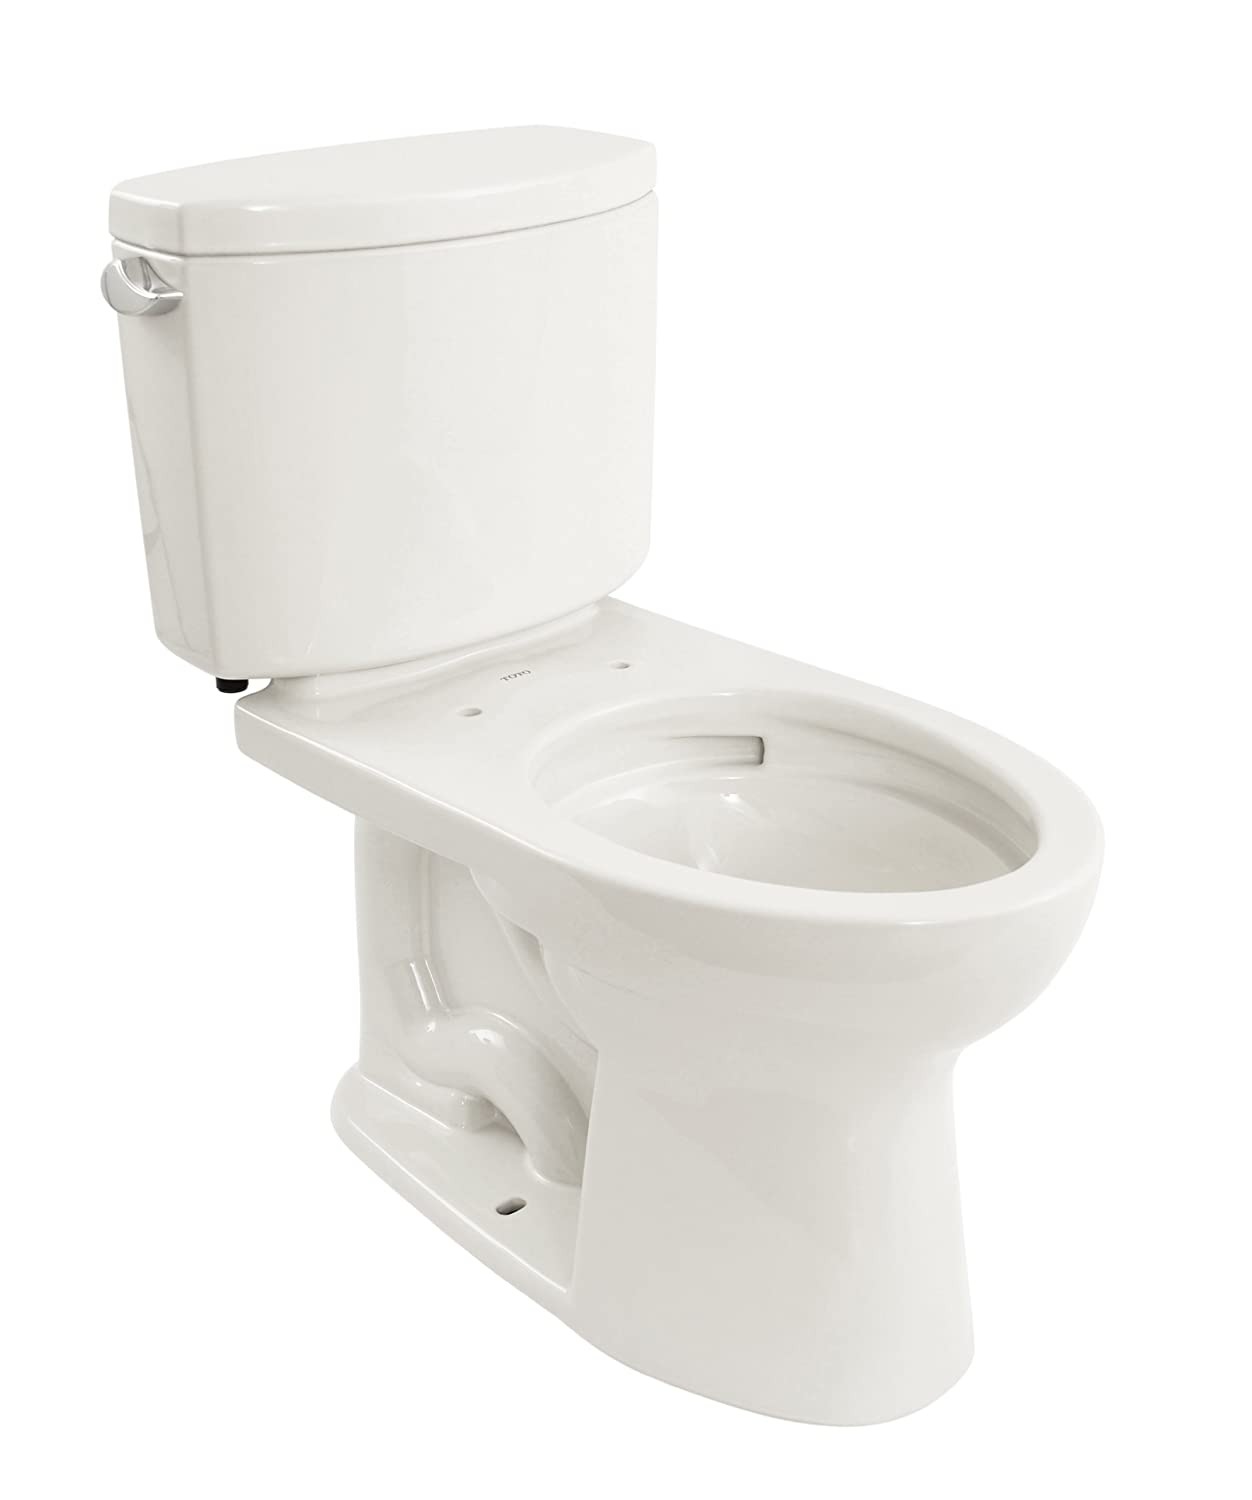 Best toilet on the market reviews - Toto Drake Ii 1 28 Gpf A Best Toilet Toilet Reviews